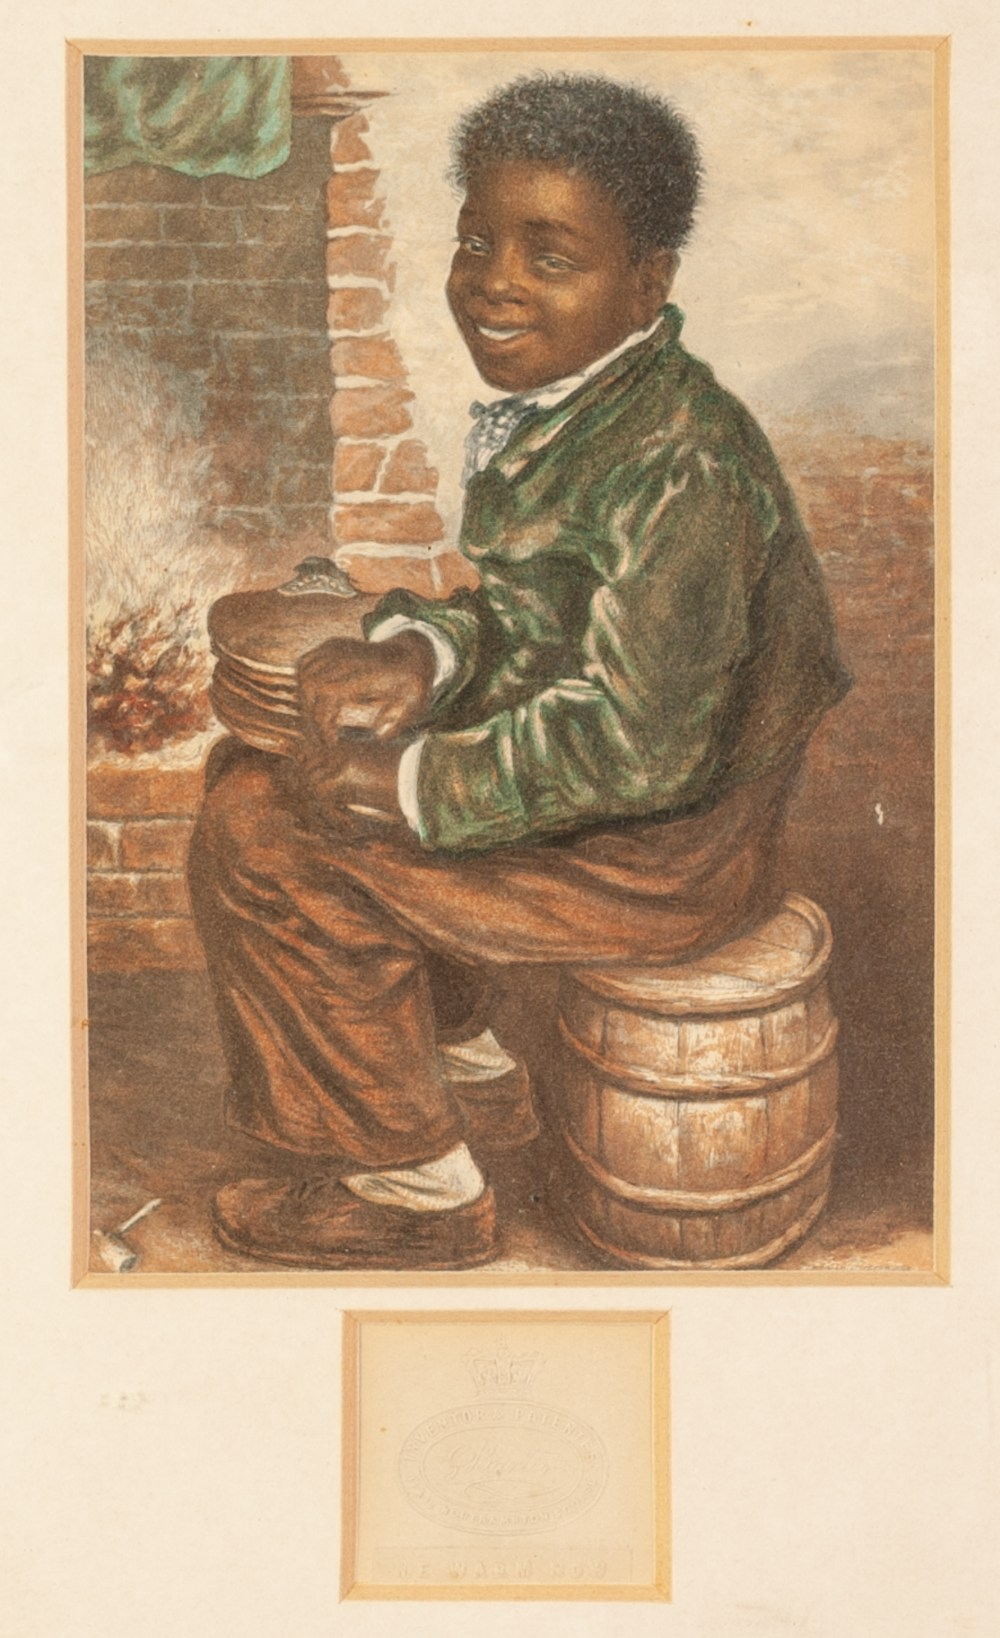 Lot 210 - PAIR OF BAXTER PRINTS 'Me Warm Now' 'The Young Chimney Sweep' Both with blind stamp to a cut-out